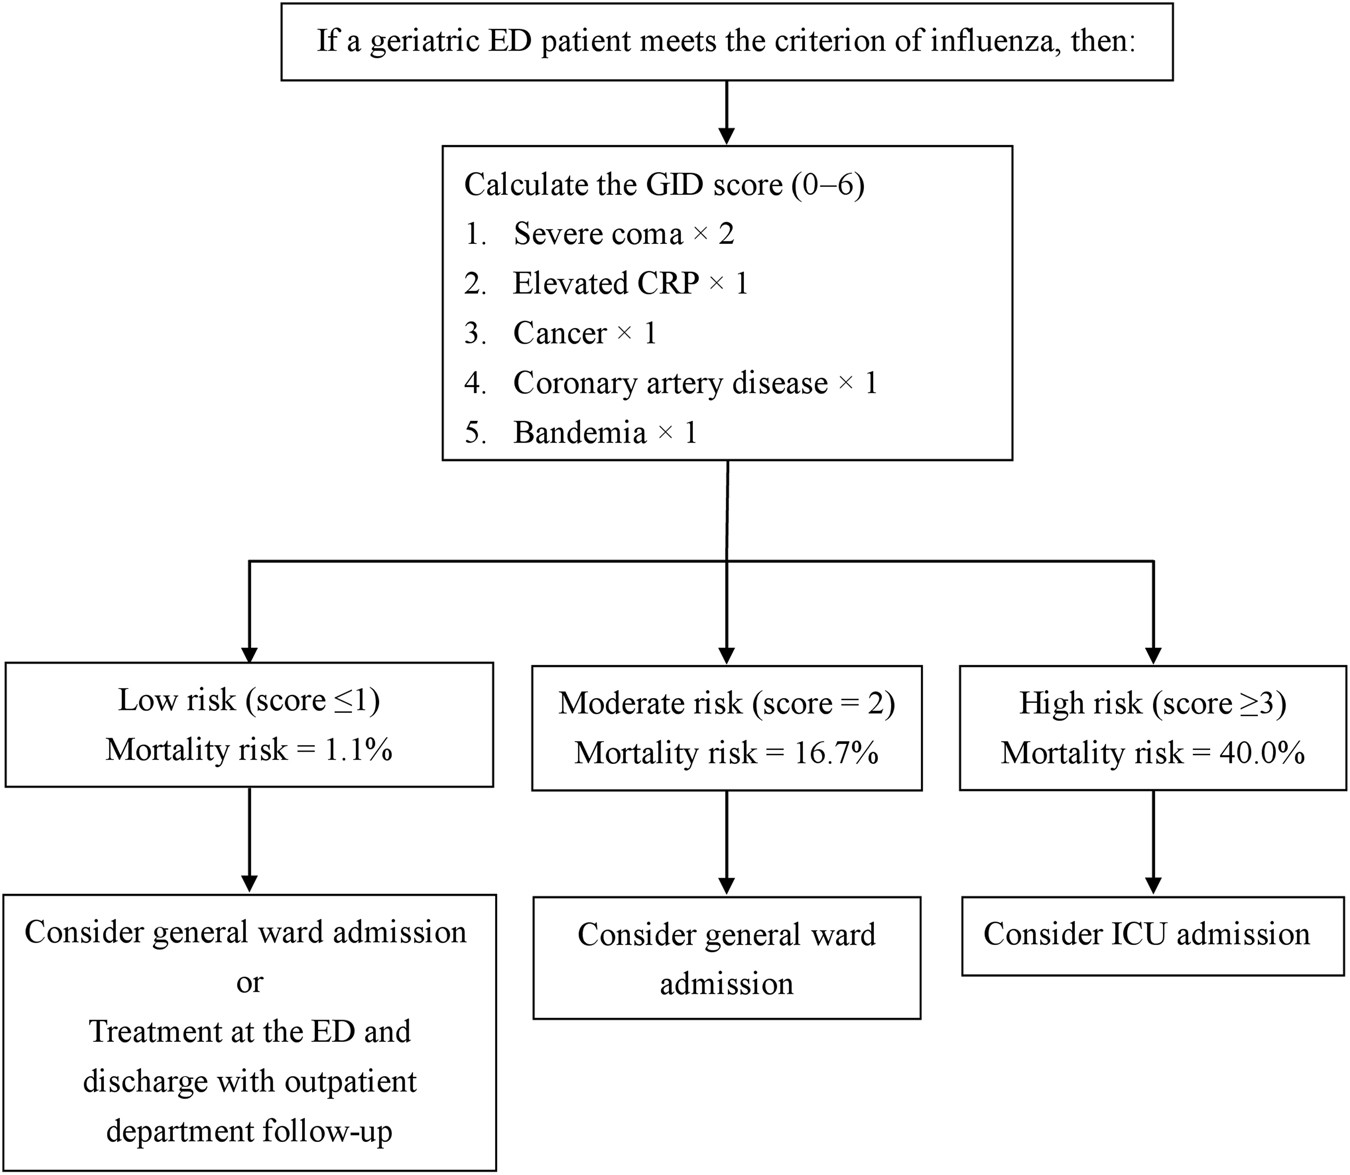 Geriatric influenza death (GID) score: a new tool for